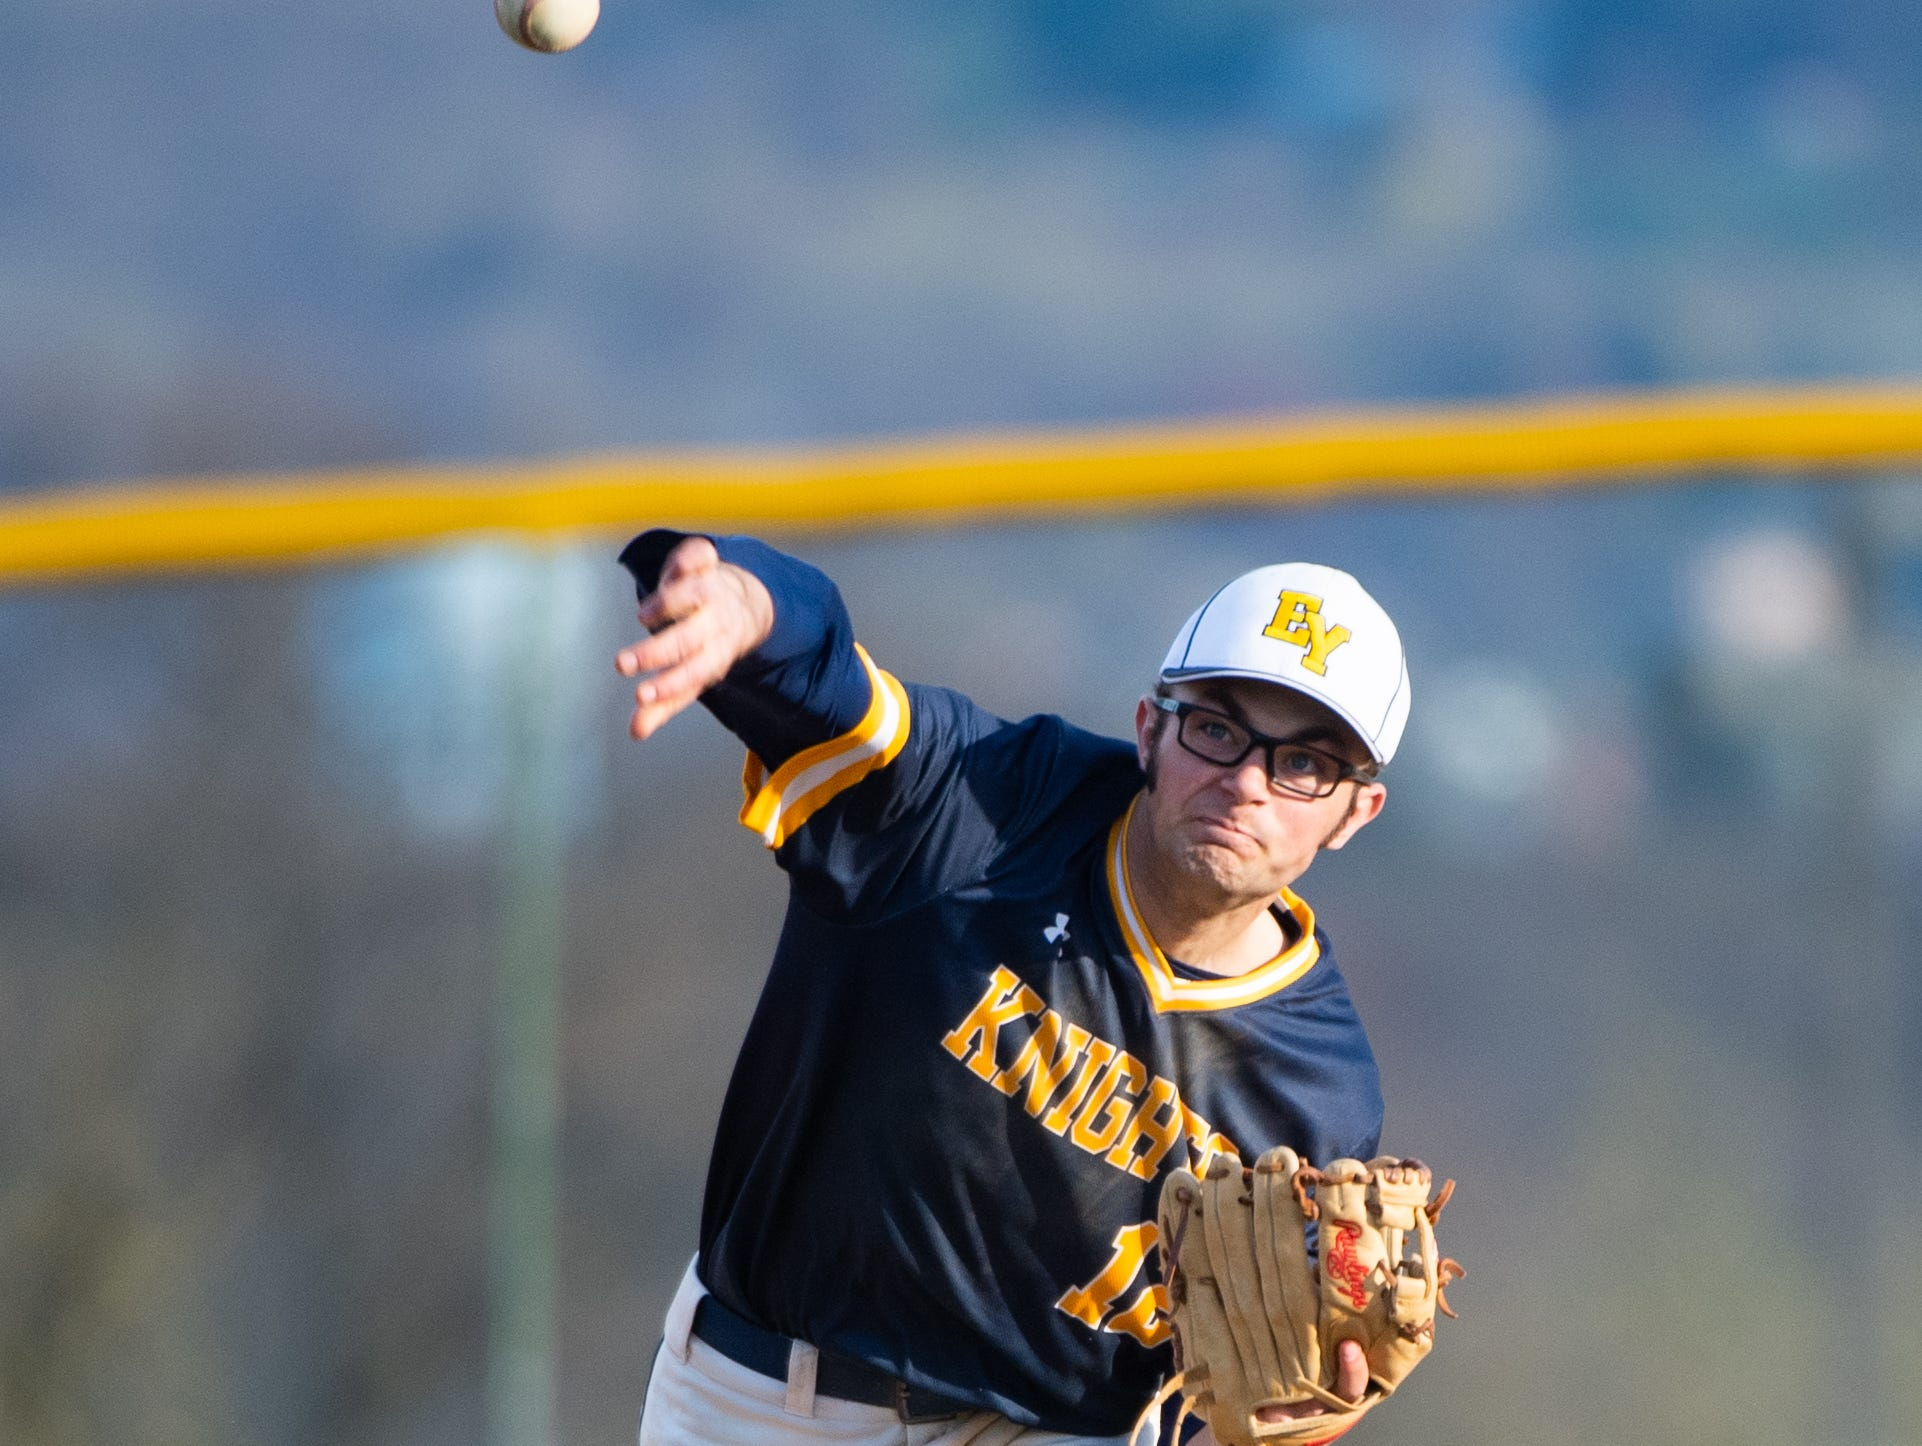 Bren Taylor (12) throws to first during the baseball game between Eastern York and Kennard-Dale, April 10, 2019 at Eastern York High School. The Golden Knights defeated the Rams 8 to 1.